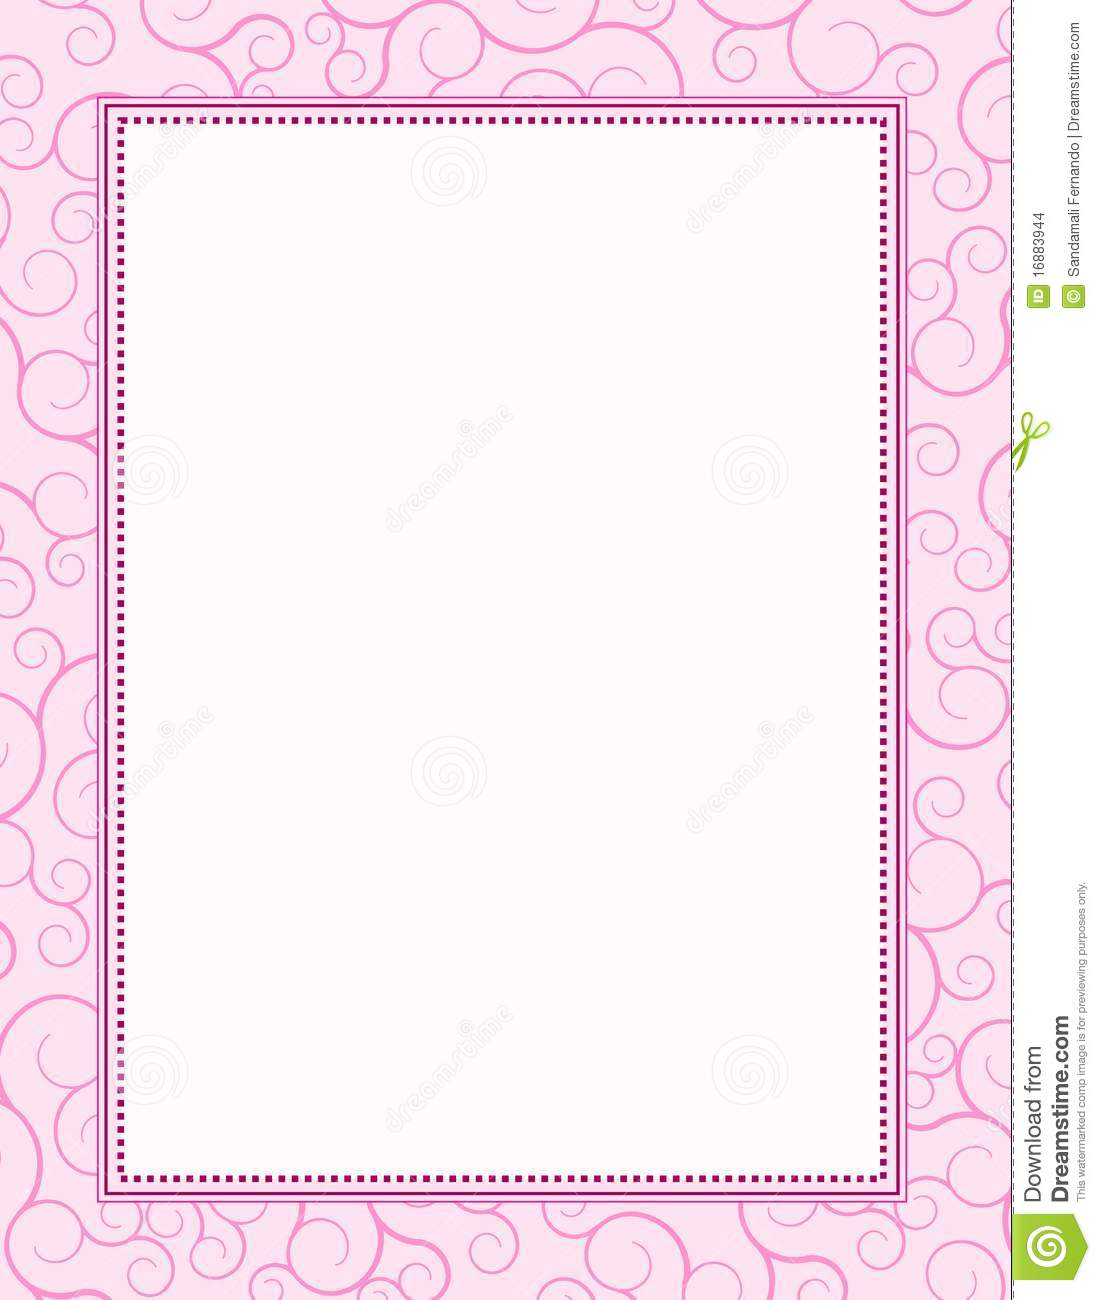 Fancy Party Invitation Background Design 8 Especially Different